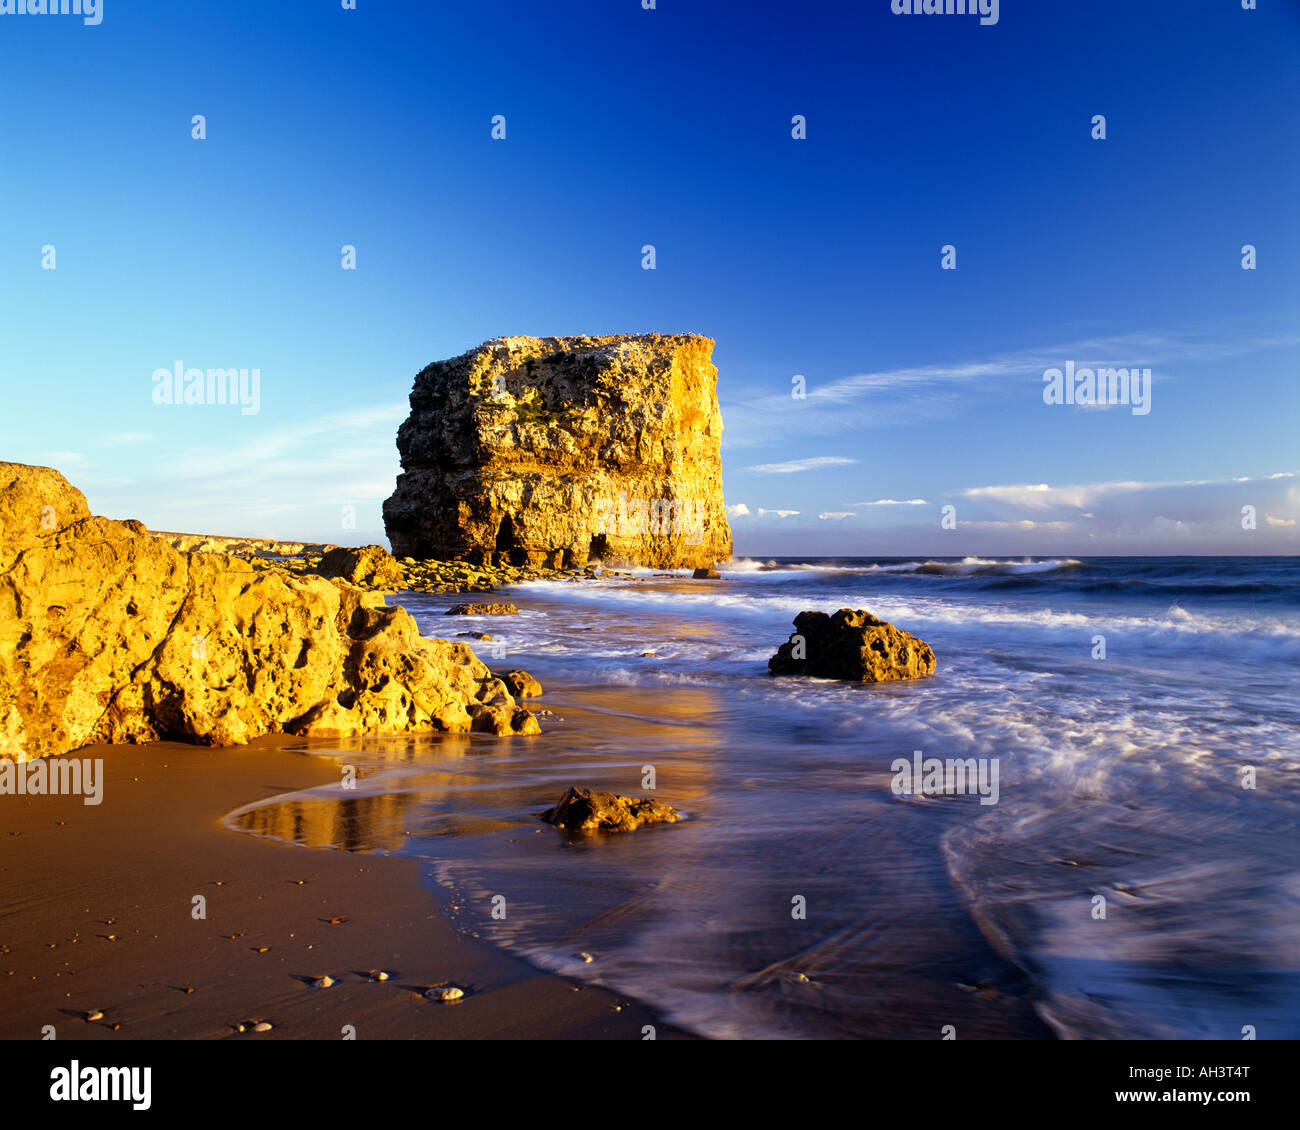 Marsden Rock on South Tyneside, Tyne and Wear at sunrise over a wet beach - Stock Image